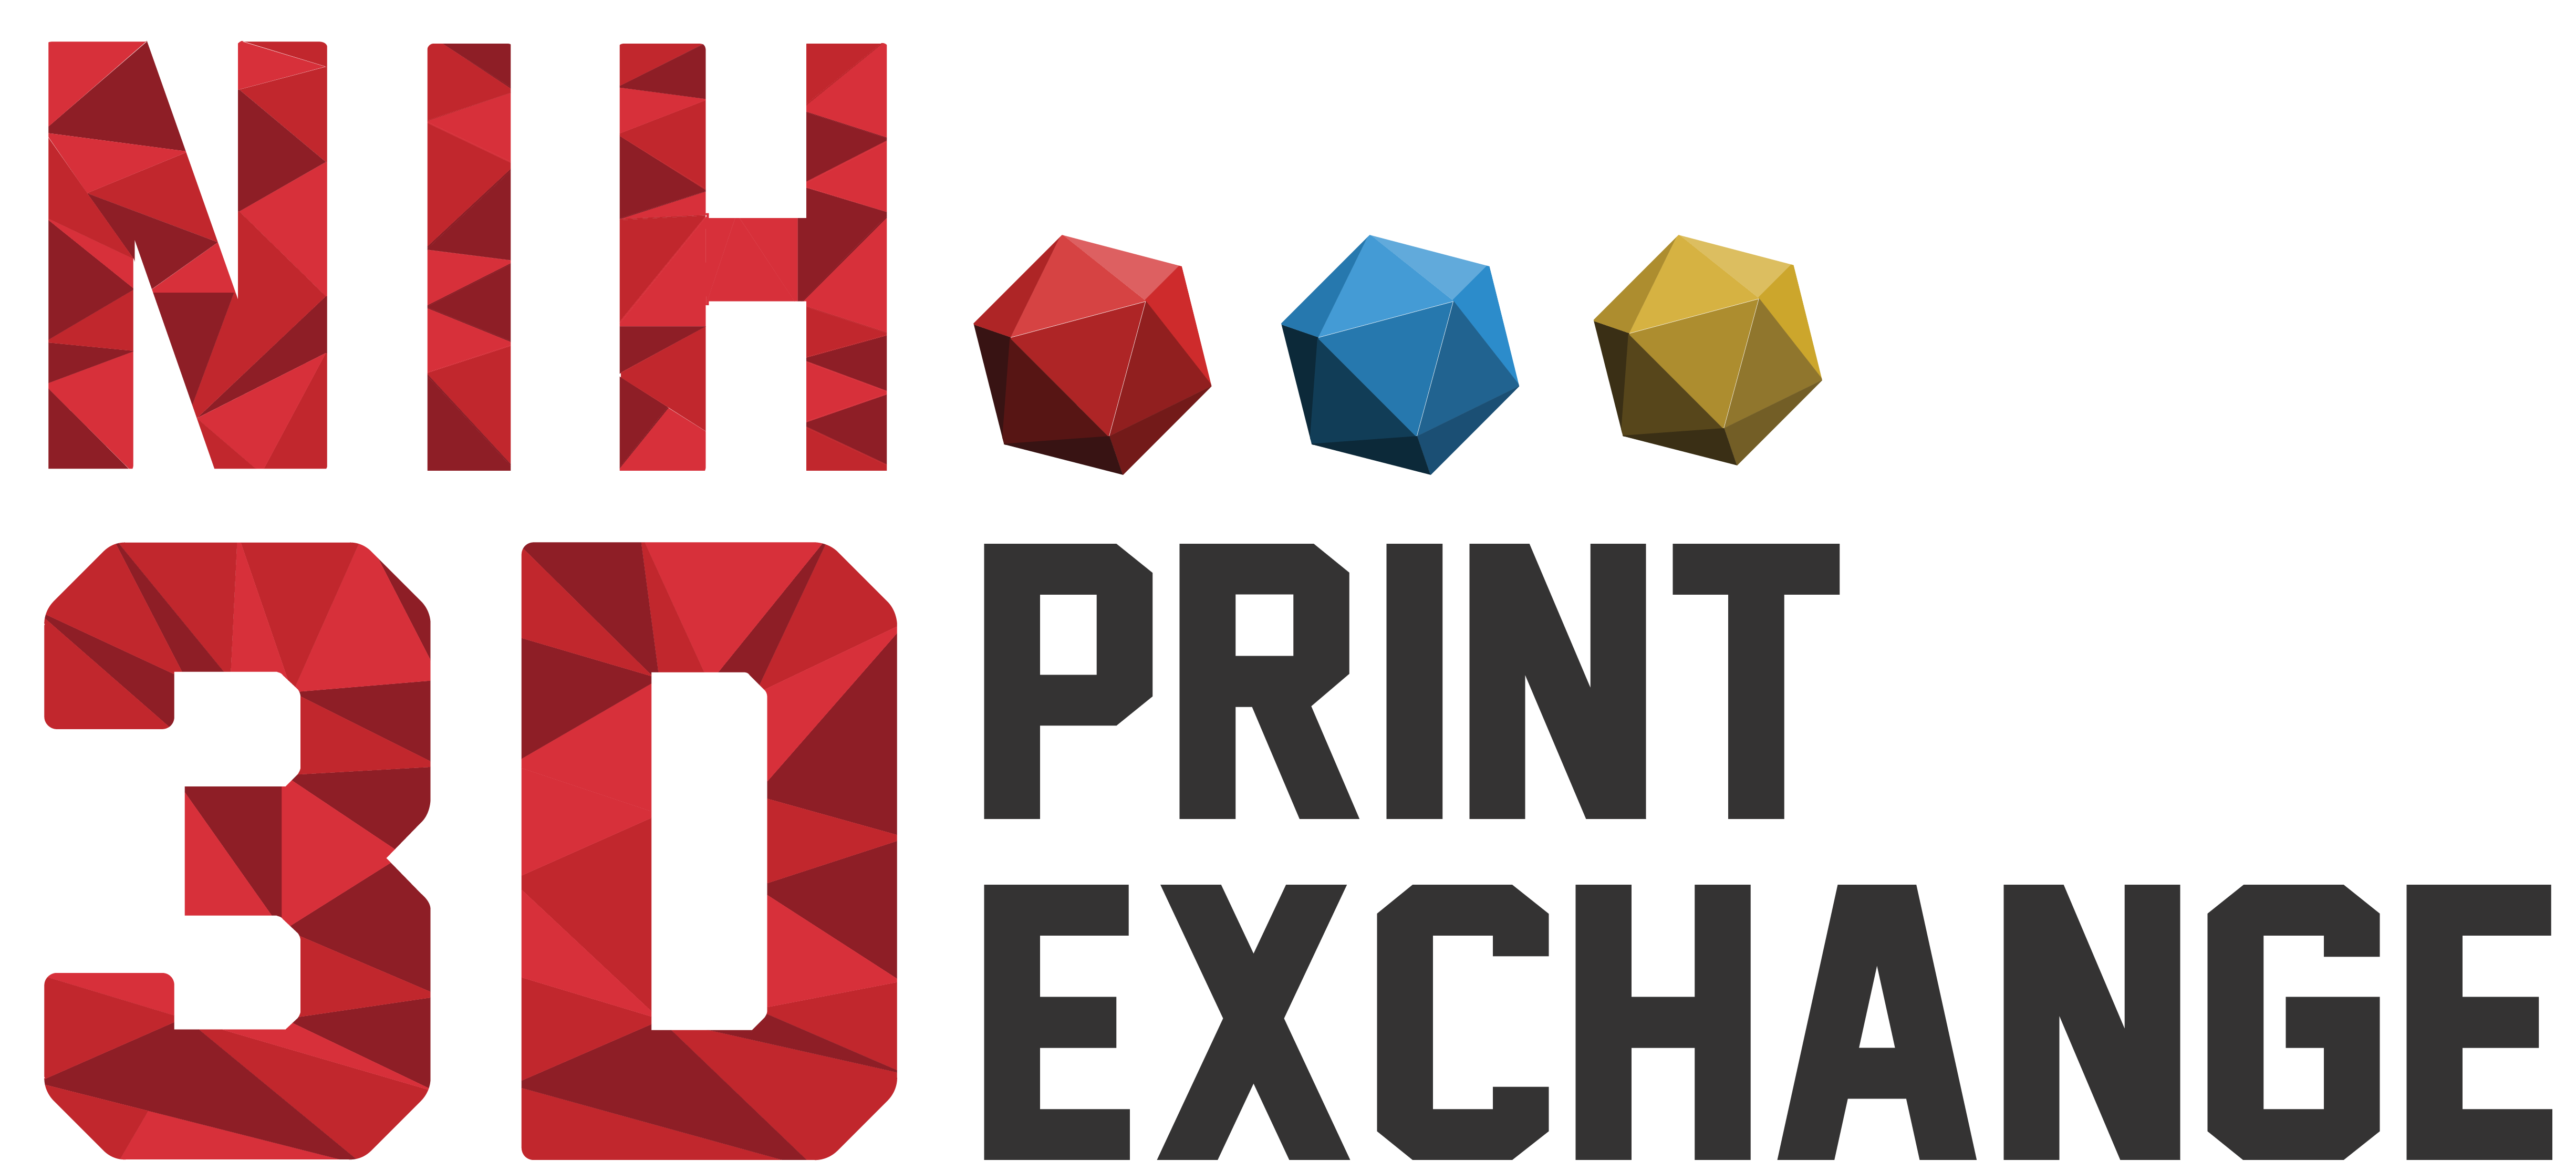 nih 3d print exchange a collection of biomedical 3d printable files and 3d printing resources supported by the national institutes of health nih